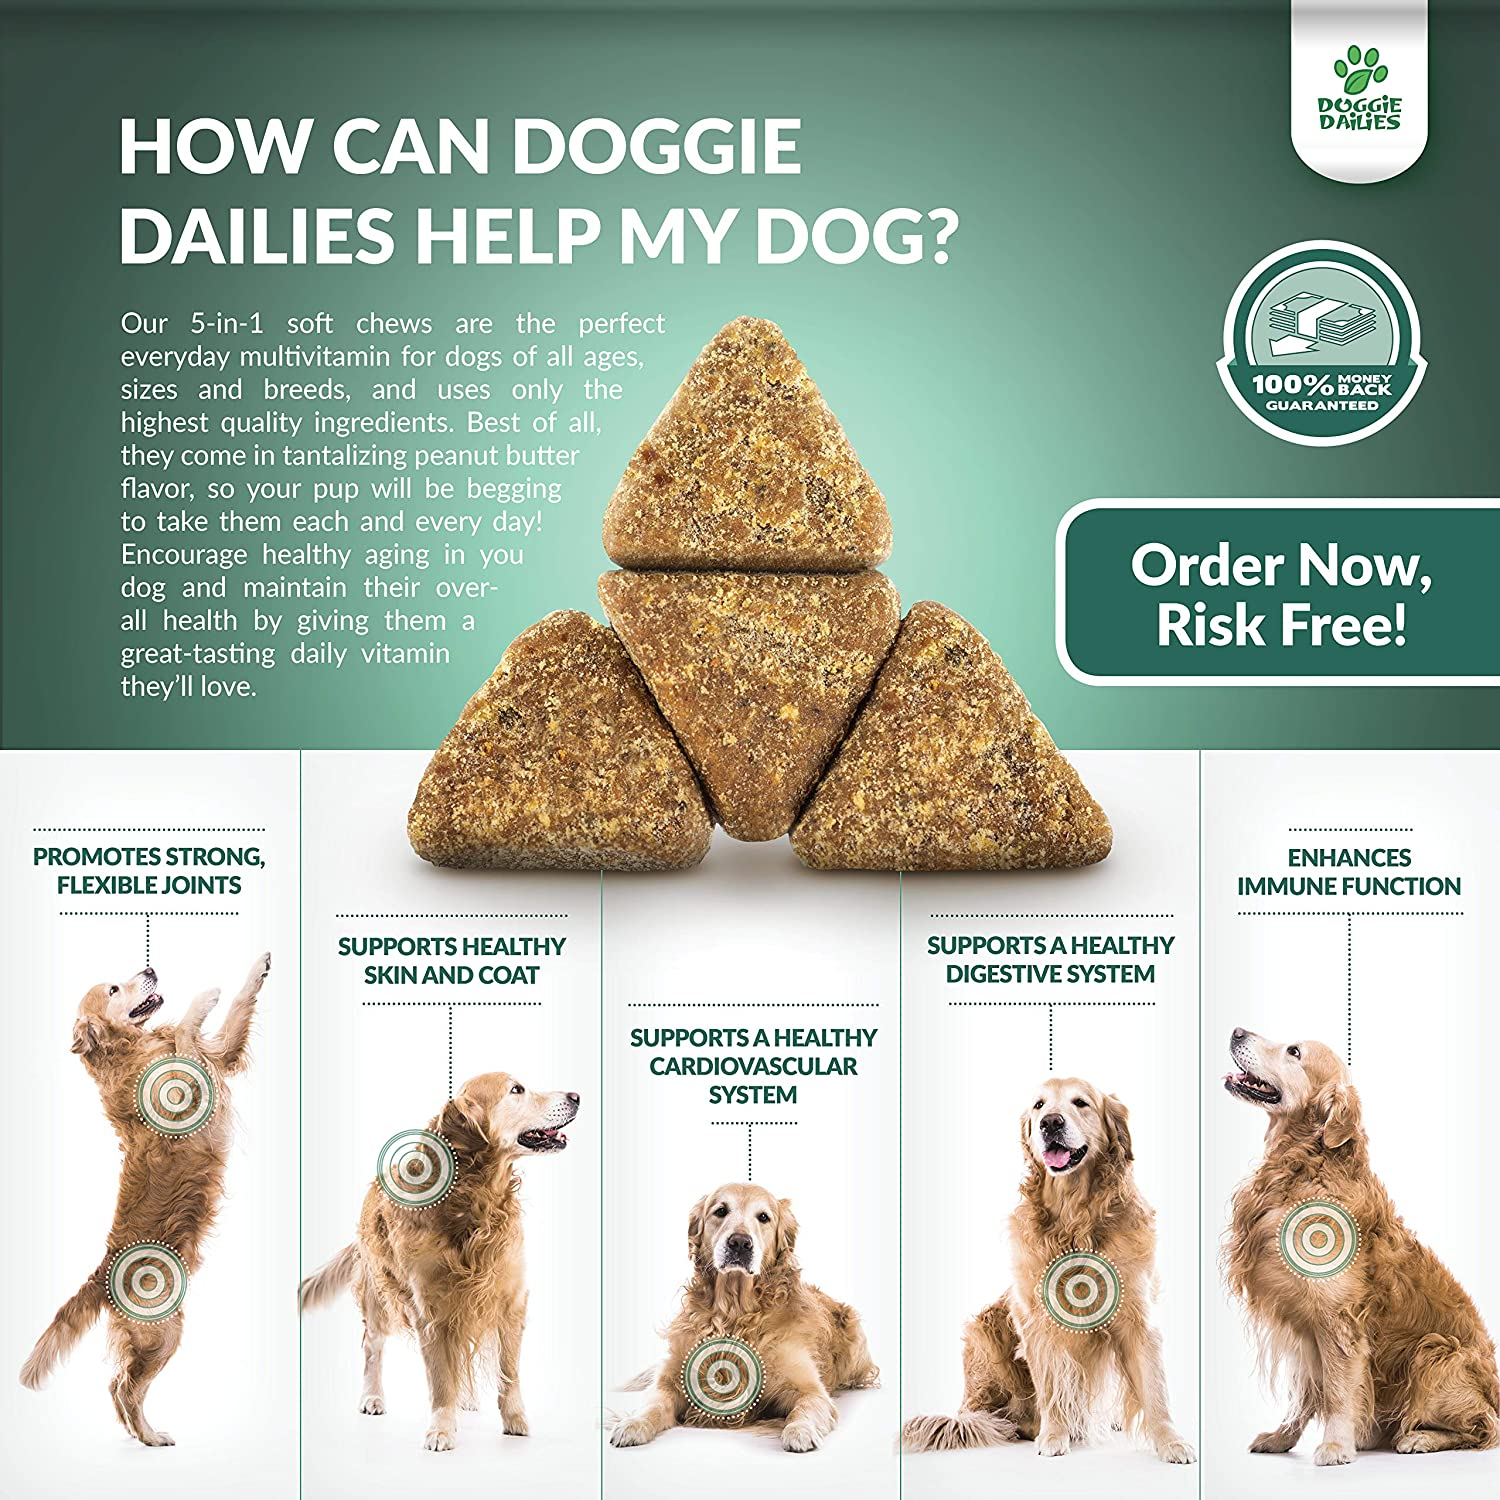 Doggie Dailies 5 in 1 Multivitamin for Dogs, 225 Soft Chews, Palm Oil Free Dog Multivitamin for Skin and Coat Health, Joint Health, Improved Digestion, Heart Health and Enhanced Immunity, Made in USA